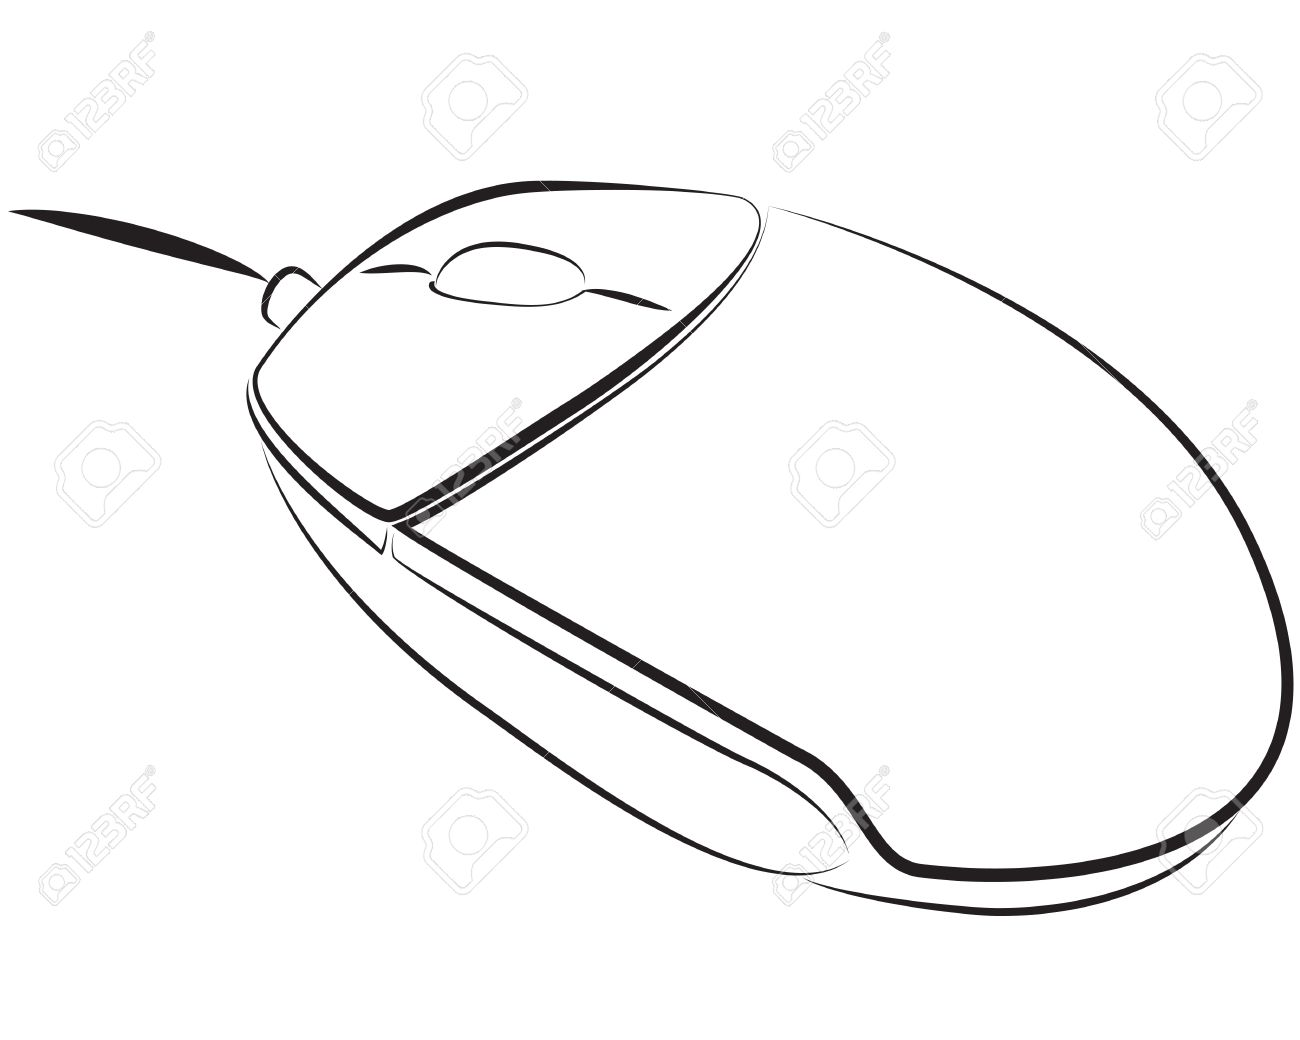 Pc Mouse Outline Contour Royalty Free Cliparts, Vectors, And Stock.